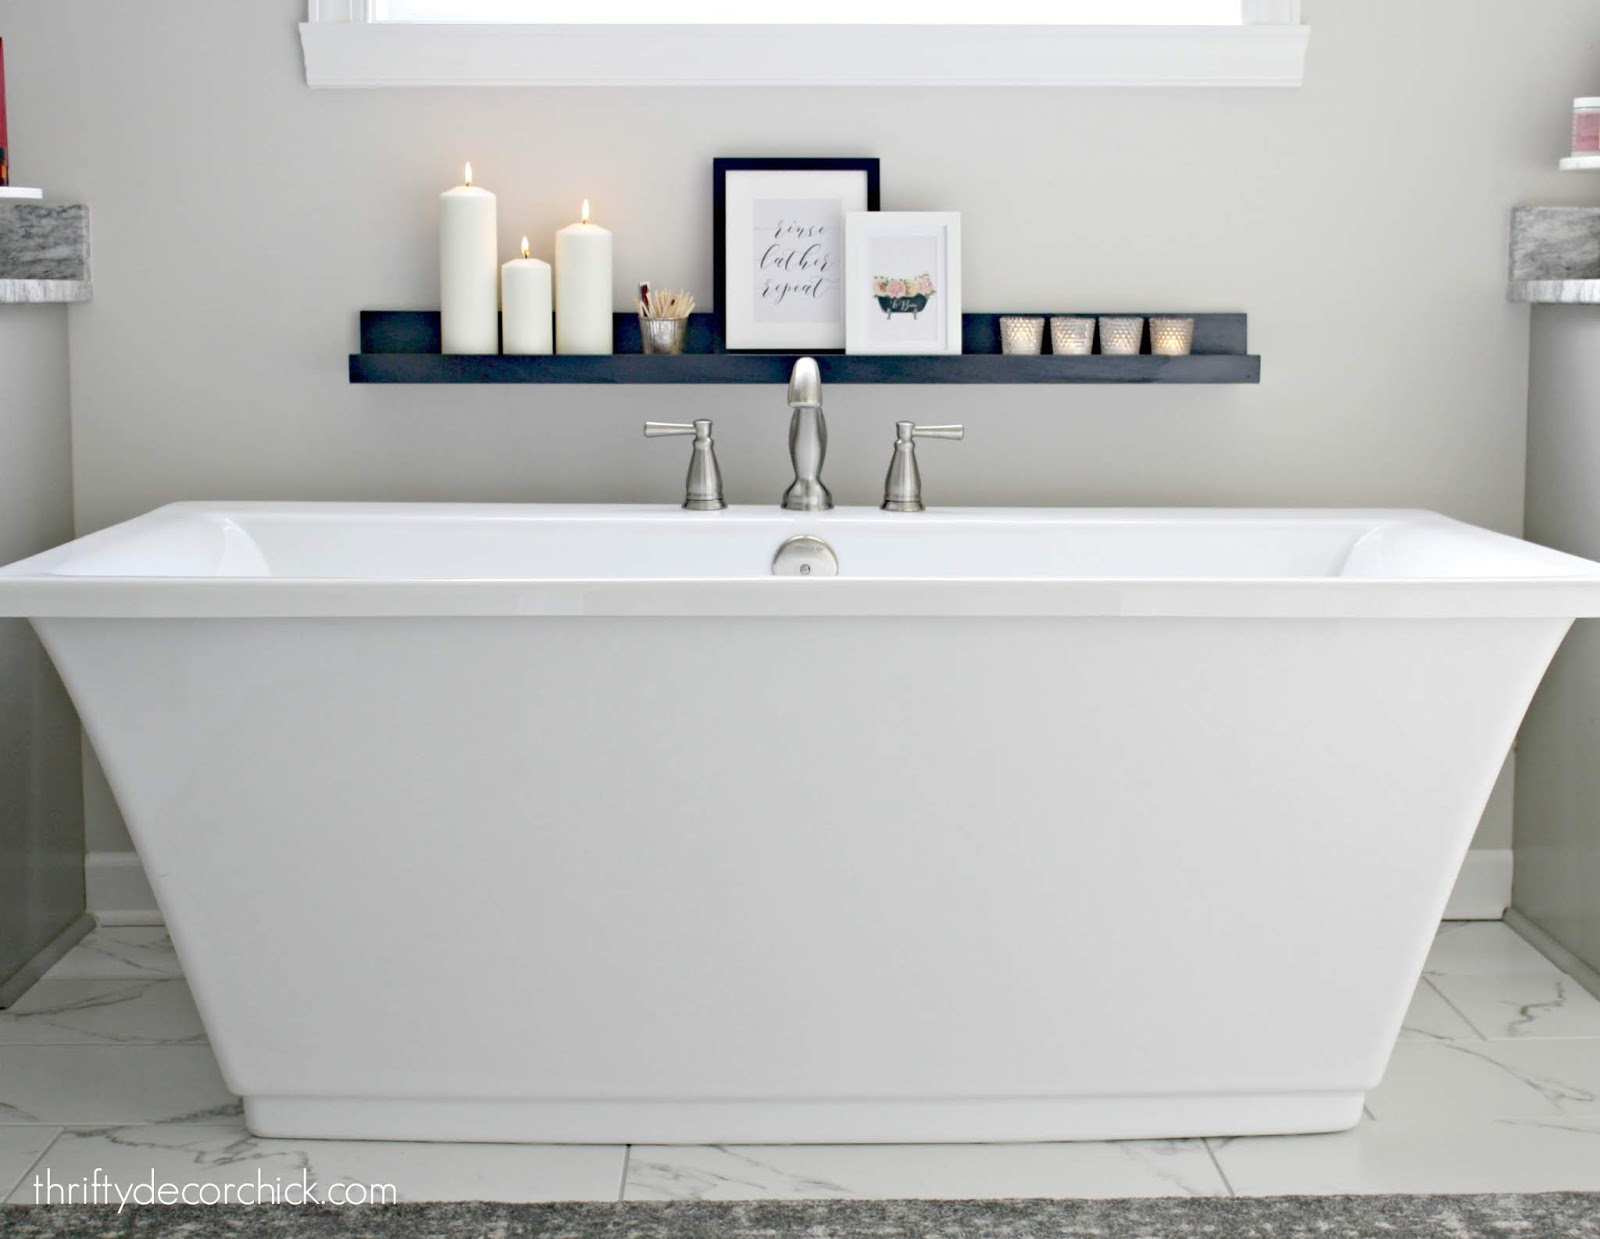 DIY picture ledge by tub